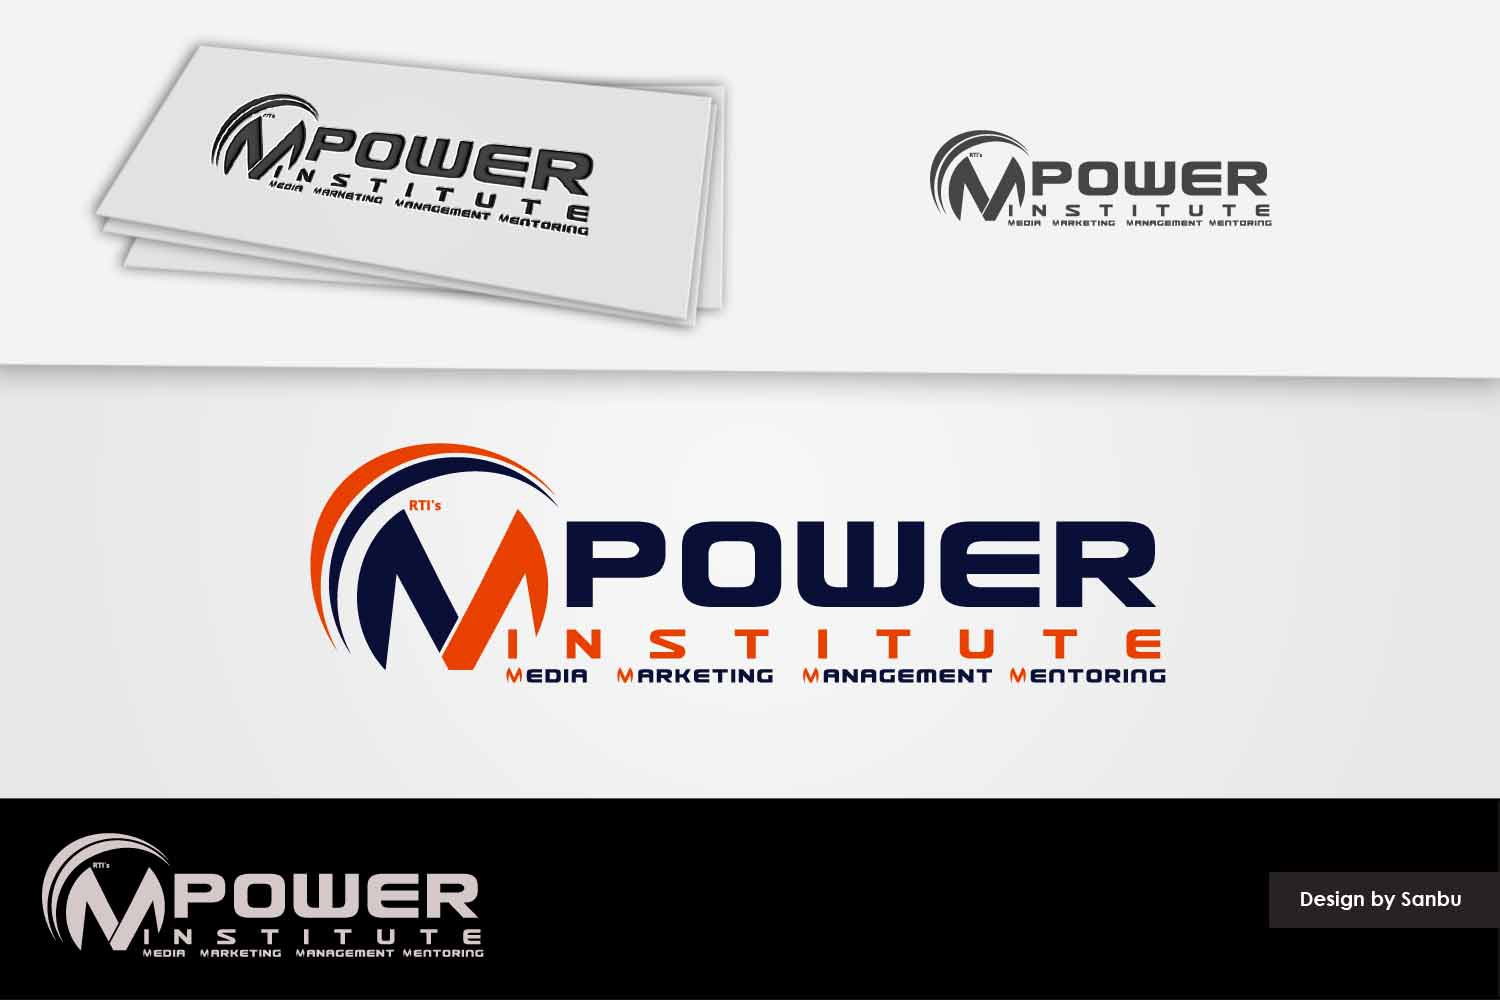 Help RTI's MPOWER INSTITUTE   with a new logo